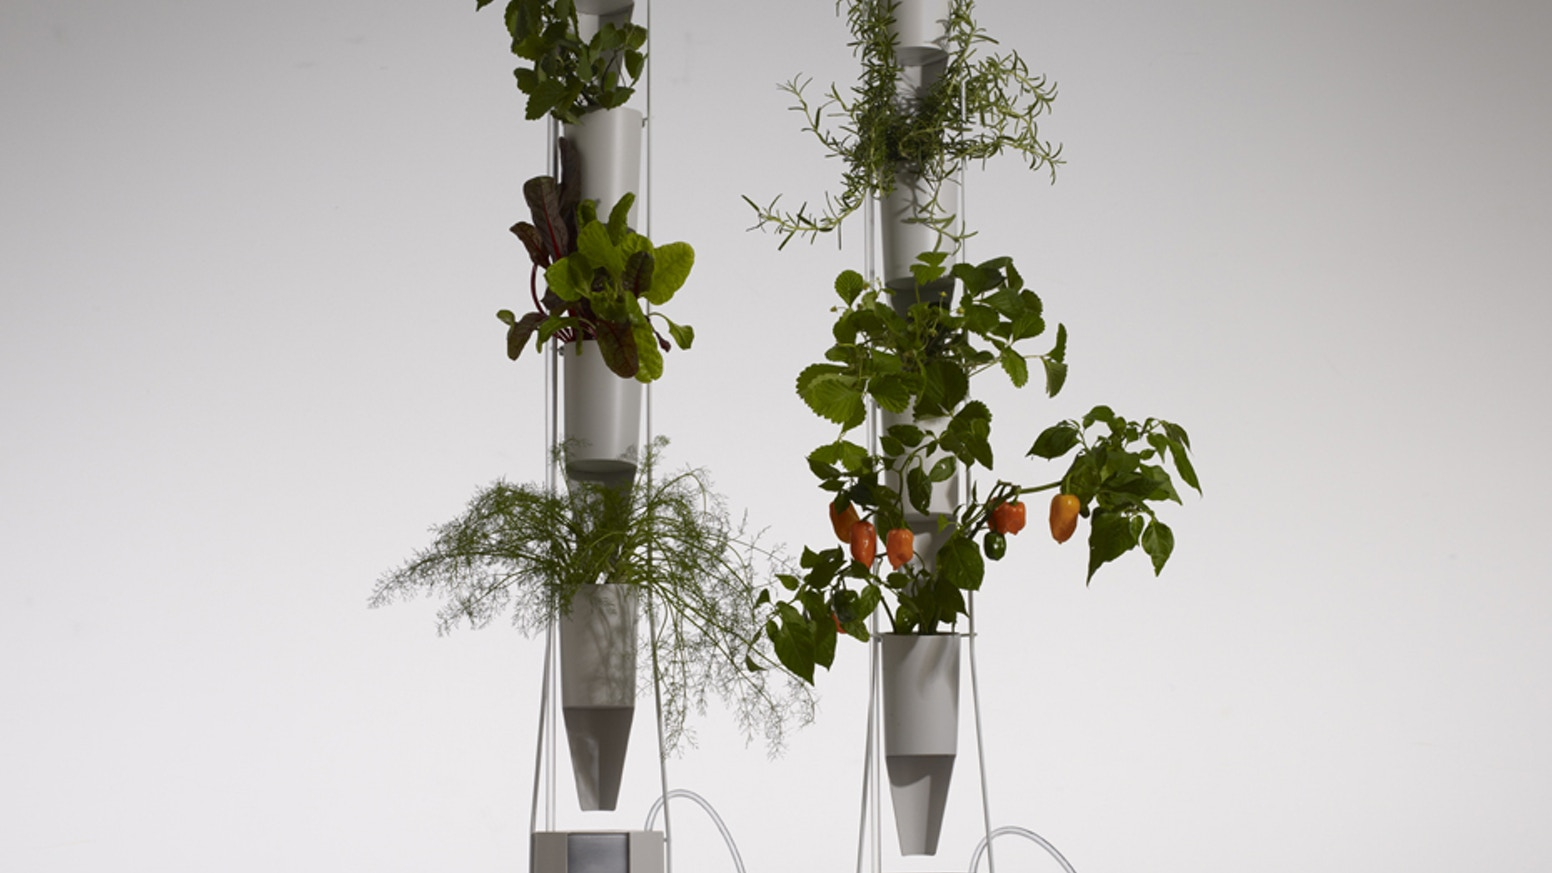 Brand New Windowfarms Vertical Food Gardens